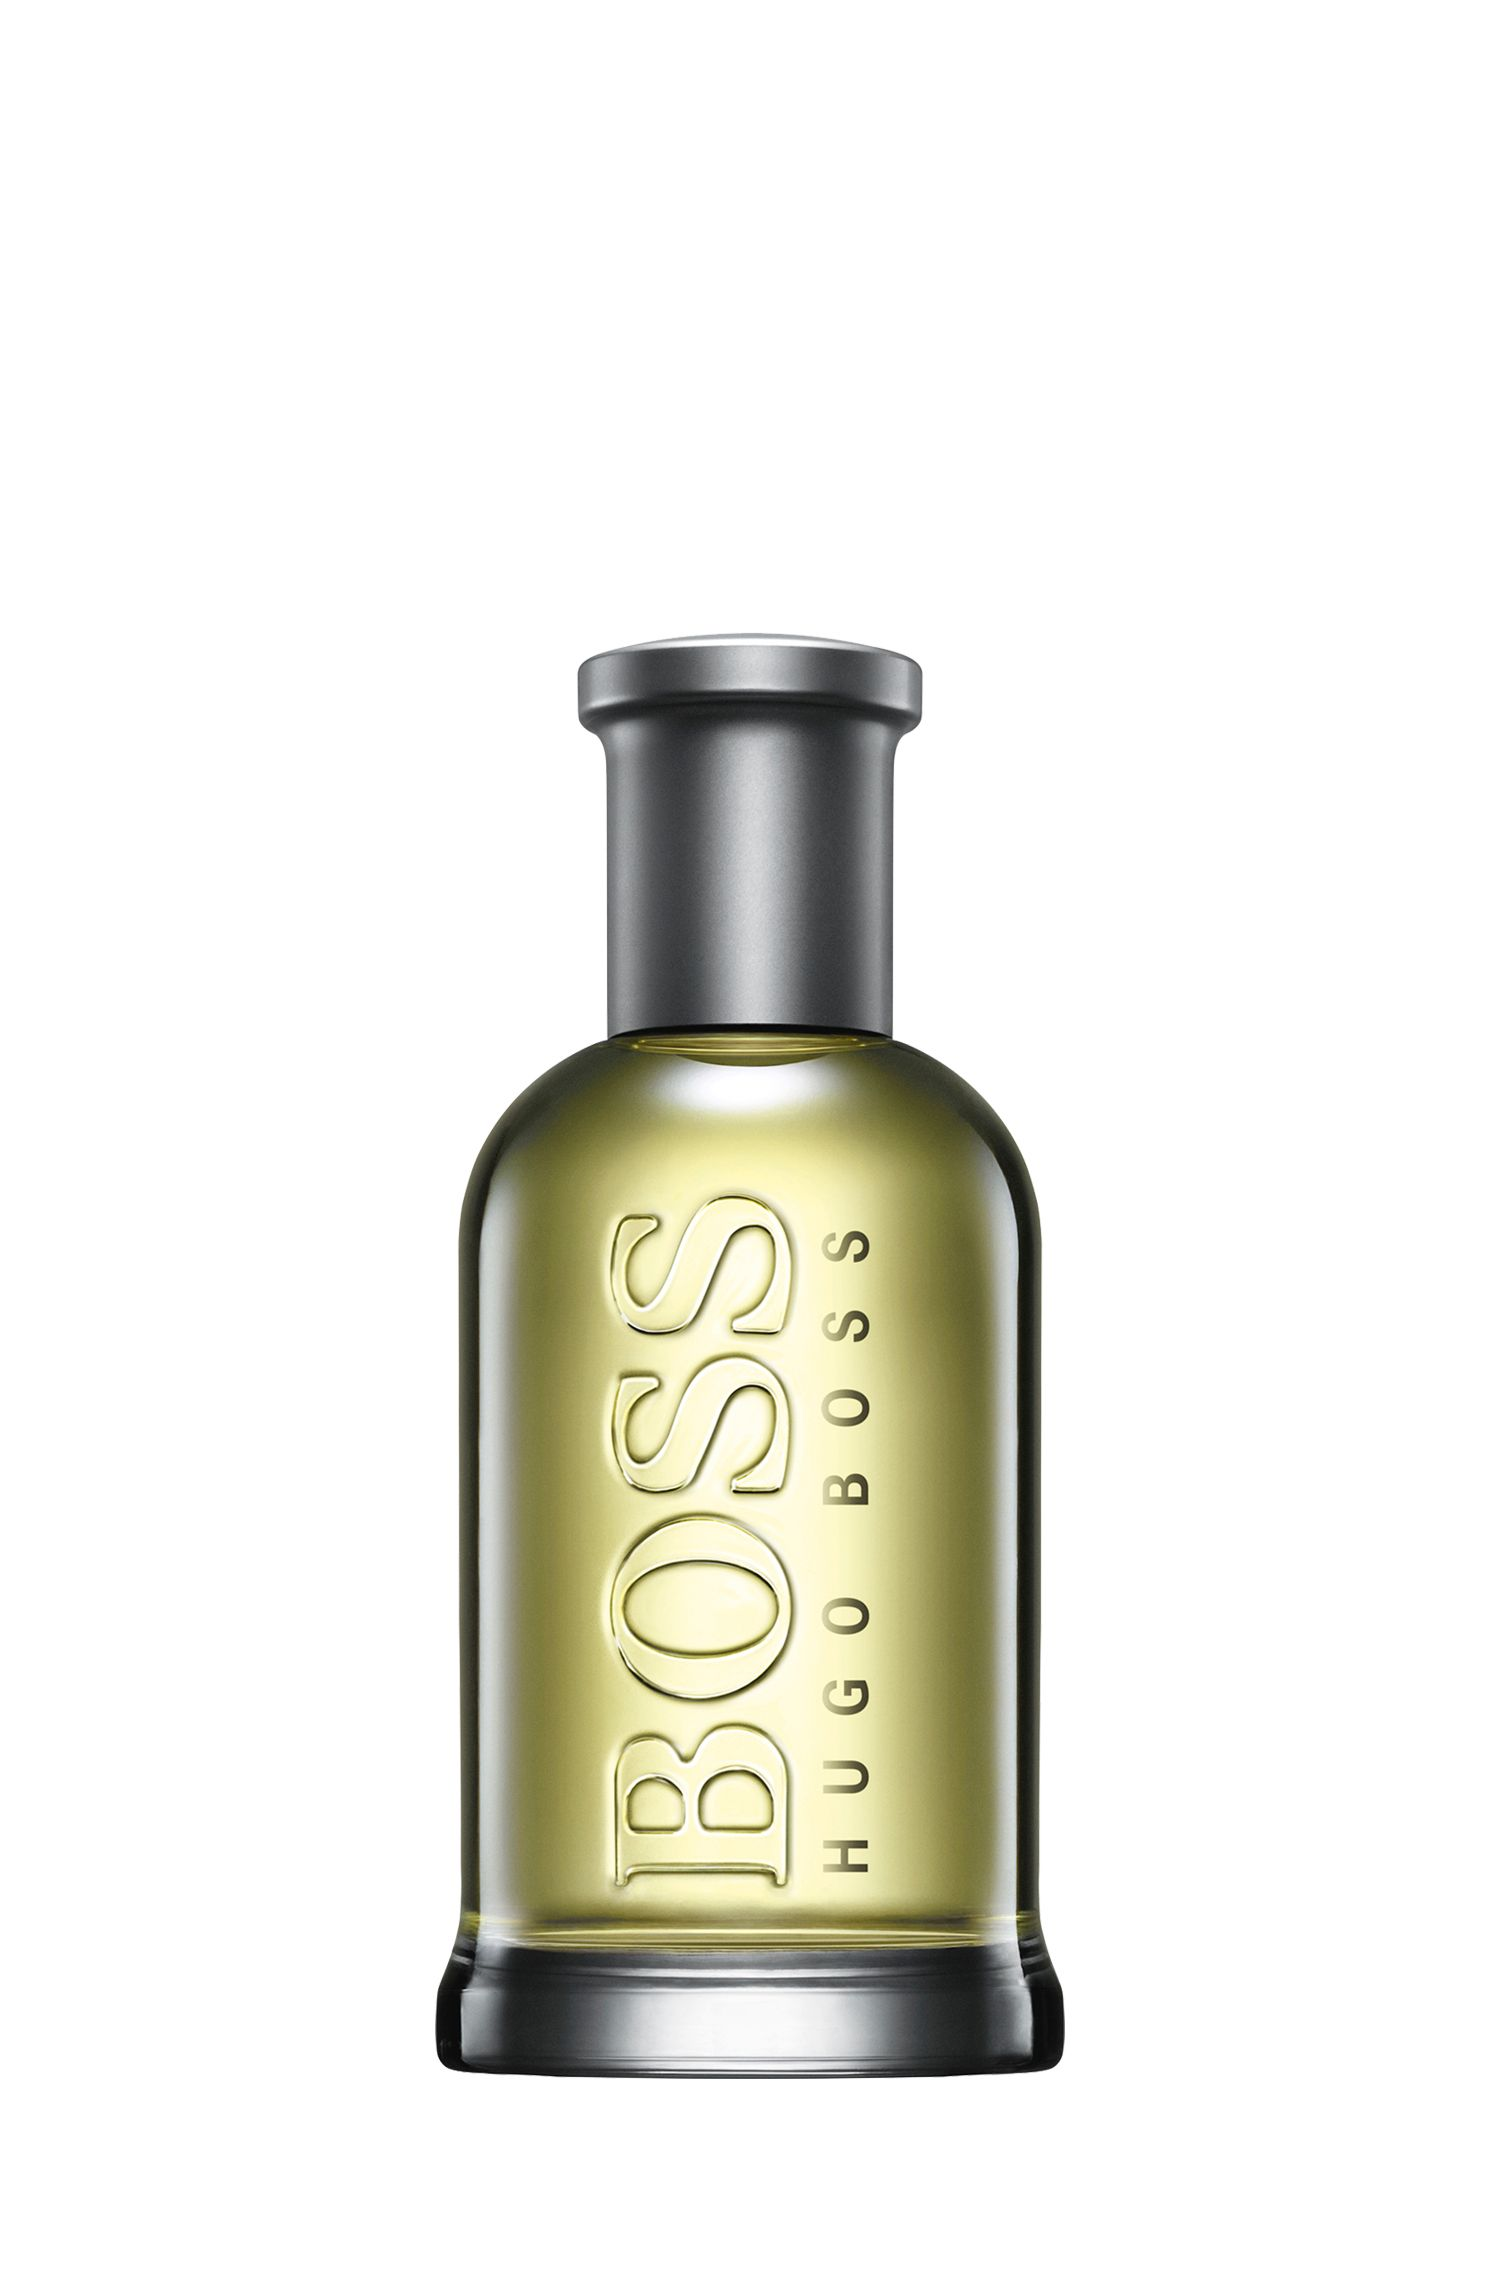 'BOSS Bottled' Eau de Toilette 50 ml